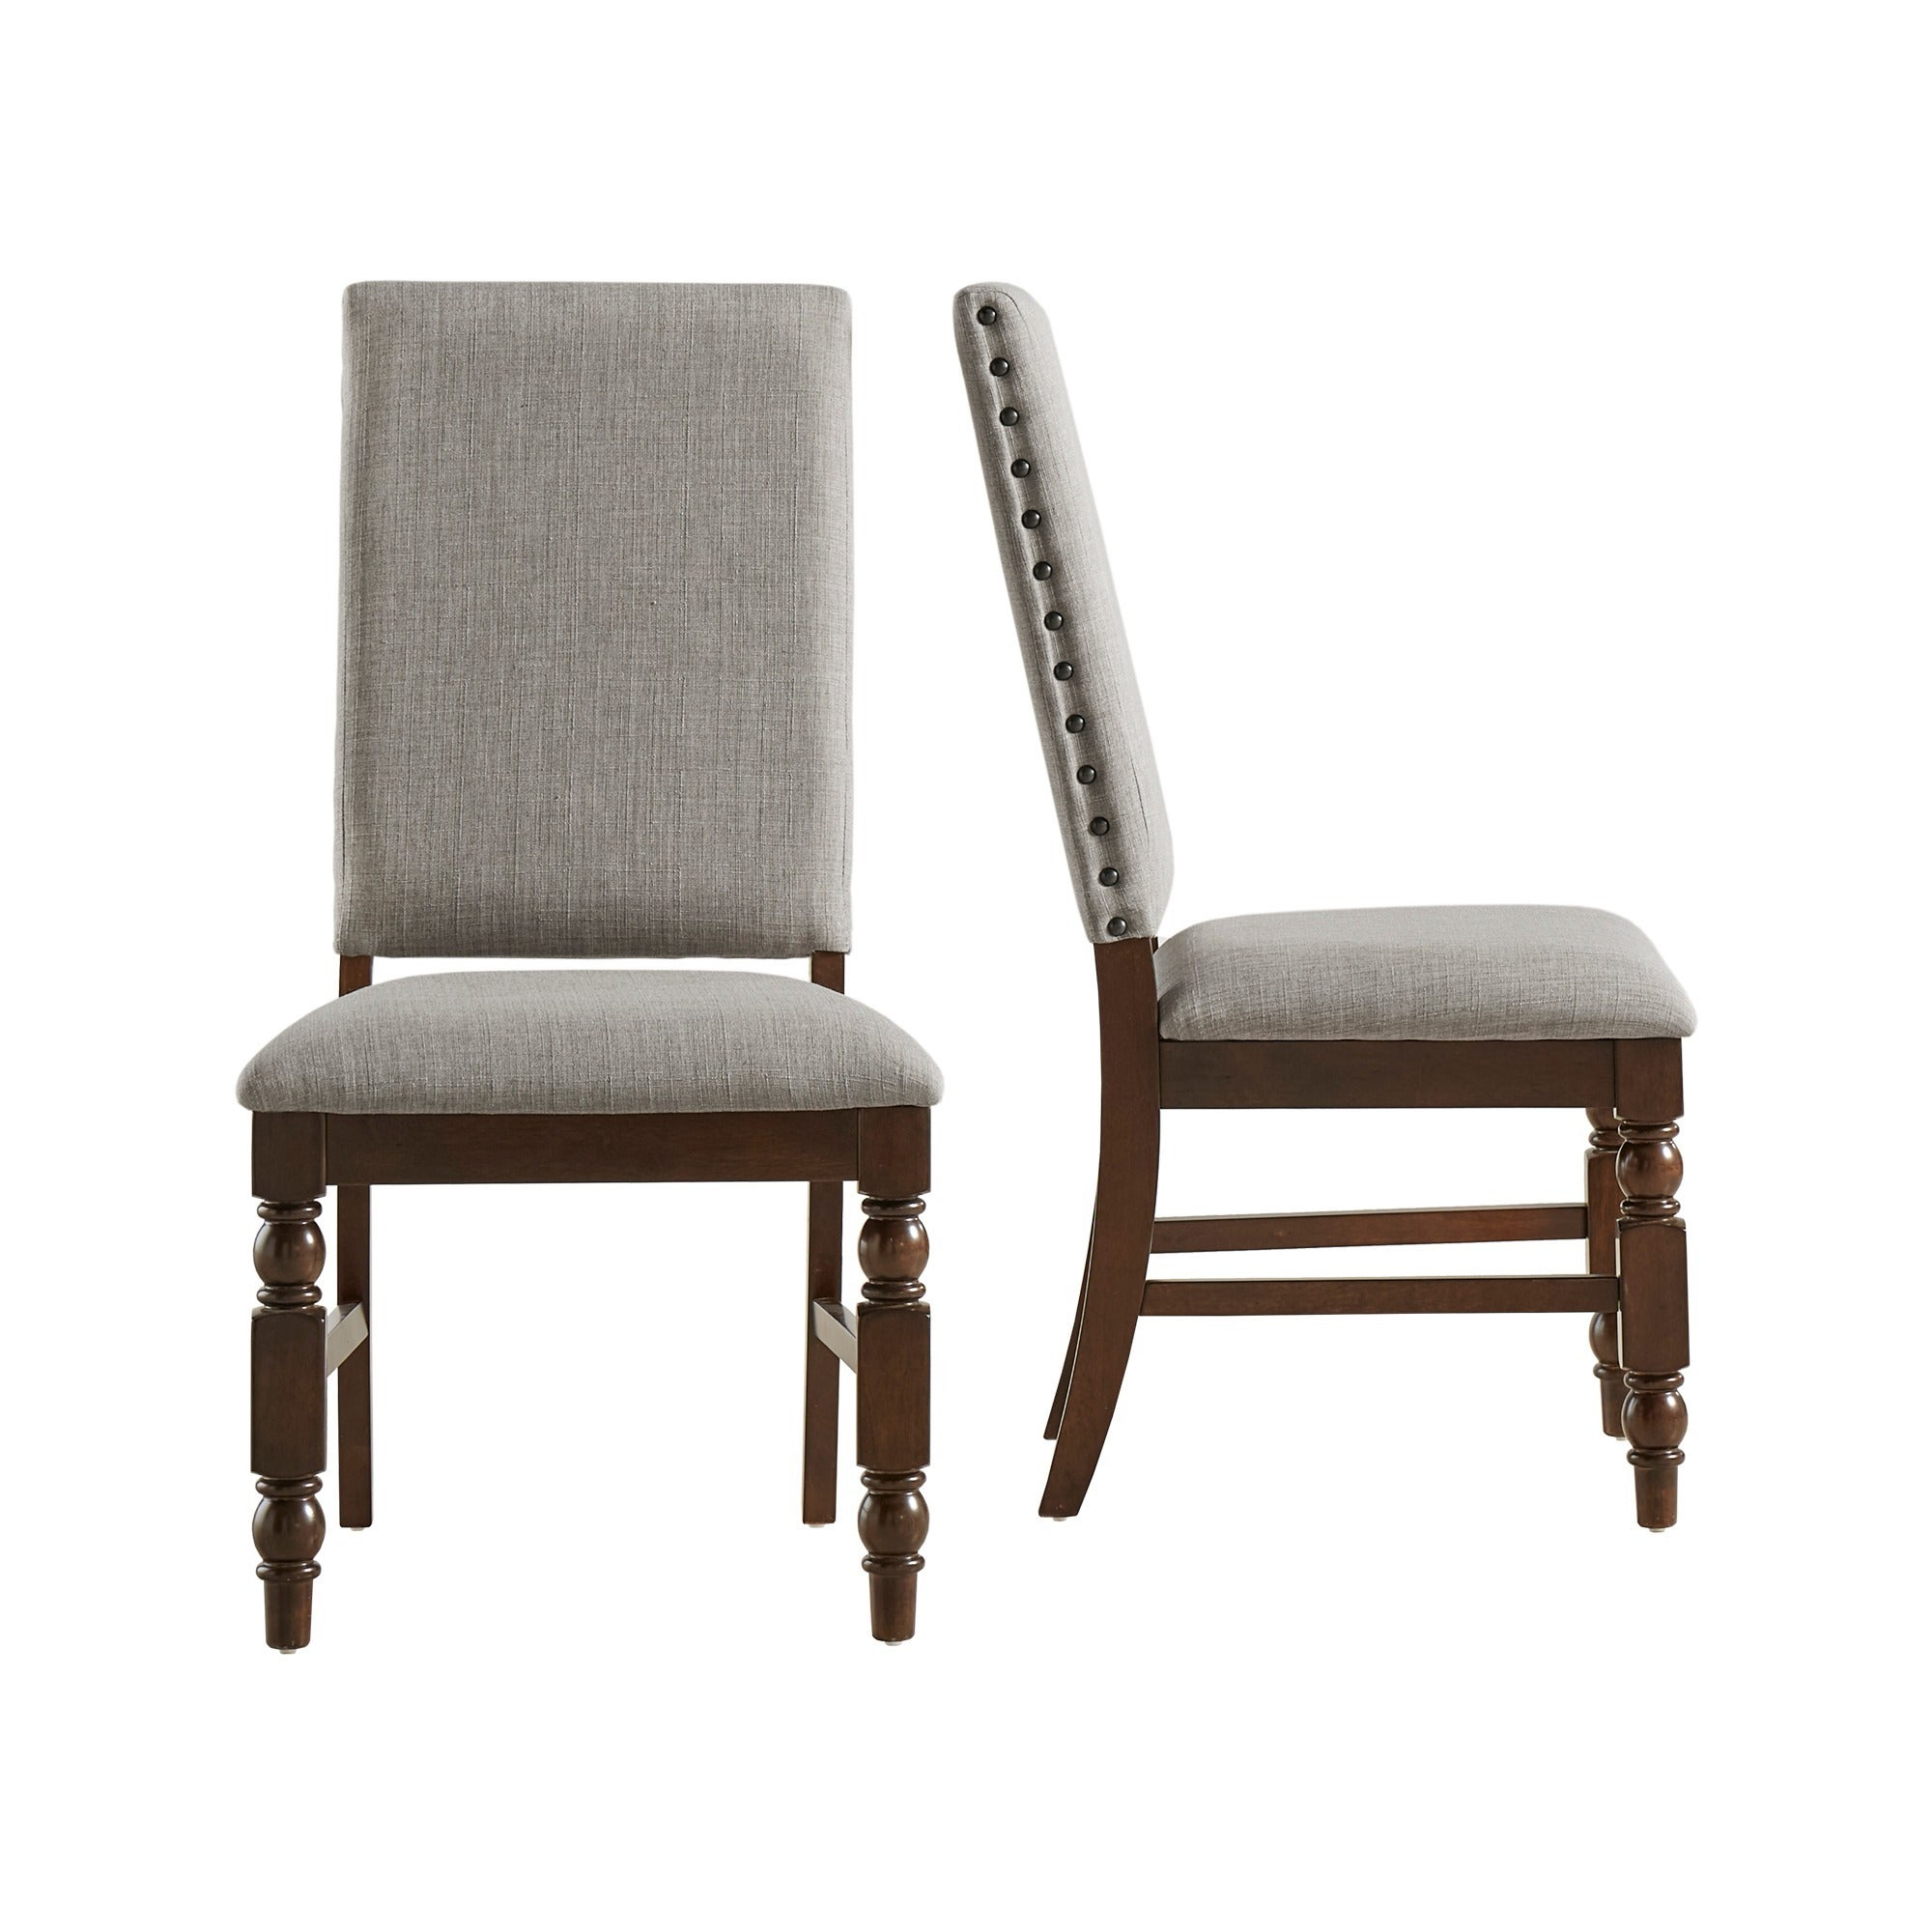 upolstered dining chairs. Flatiron-Nailhead-Upholstered-Dining-Chairs-Set-of-2- Upolstered Dining Chairs